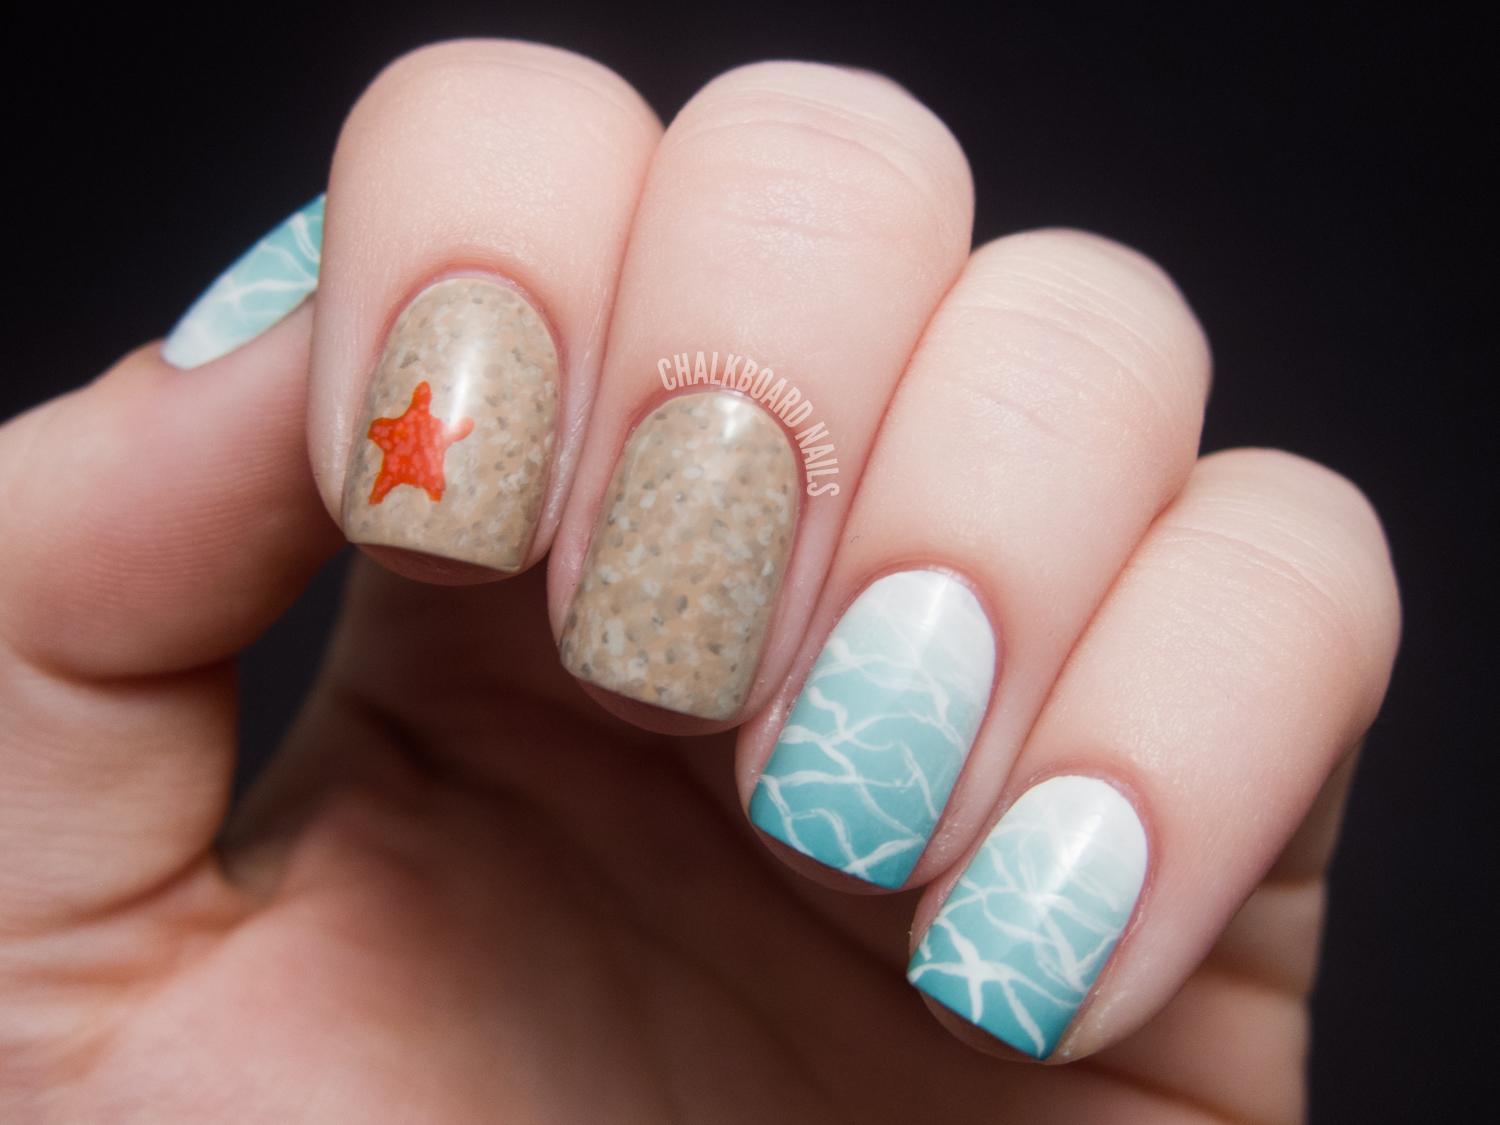 Beauty and the Beach   Chalkboard Nails   Nail Art Blog